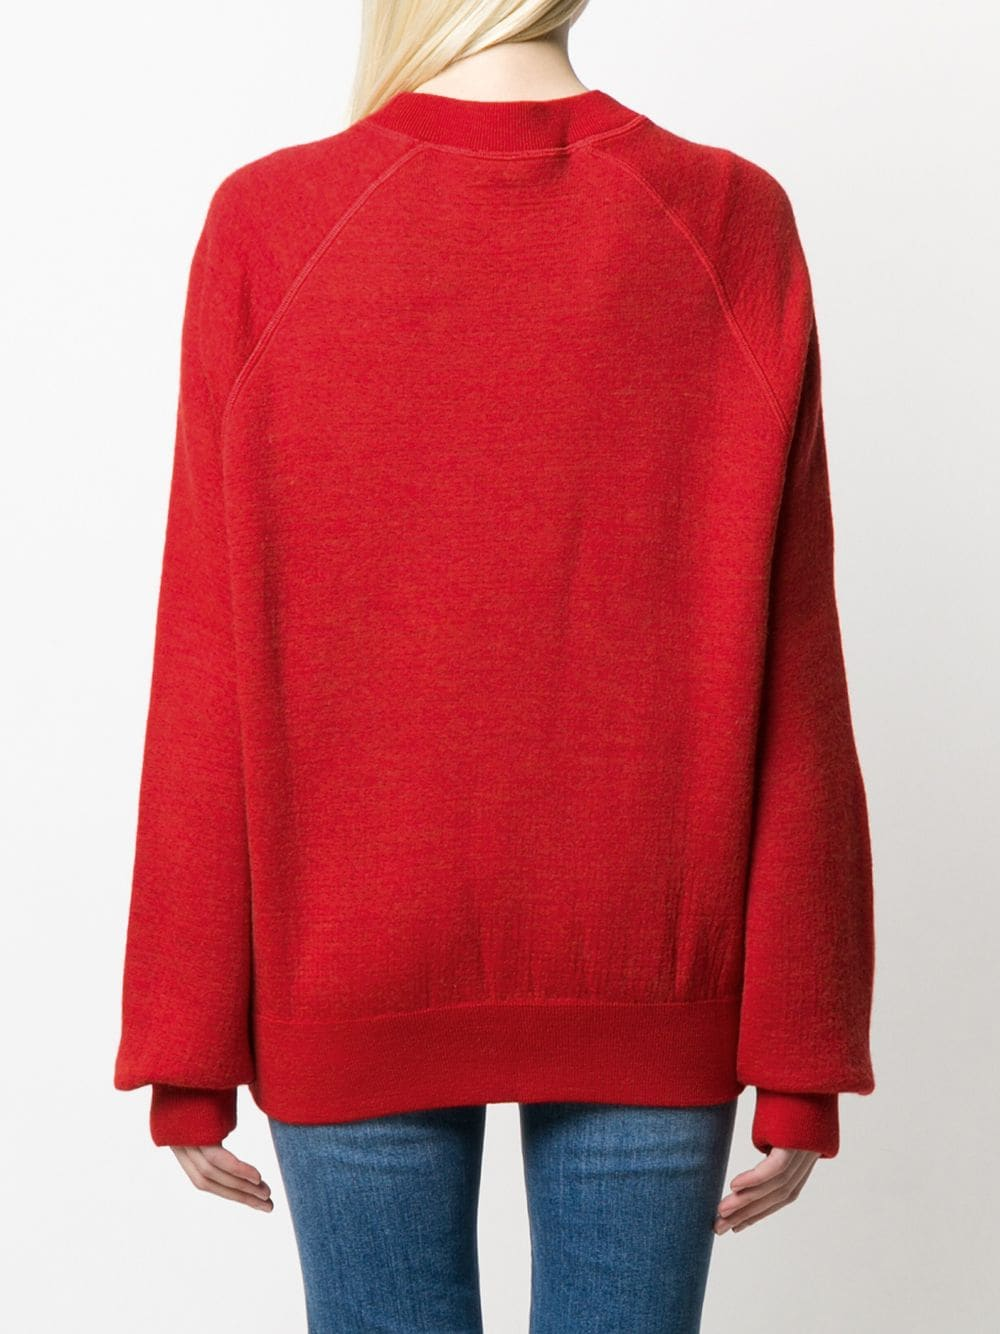 Picture of Pinko   Citrine Knitwear